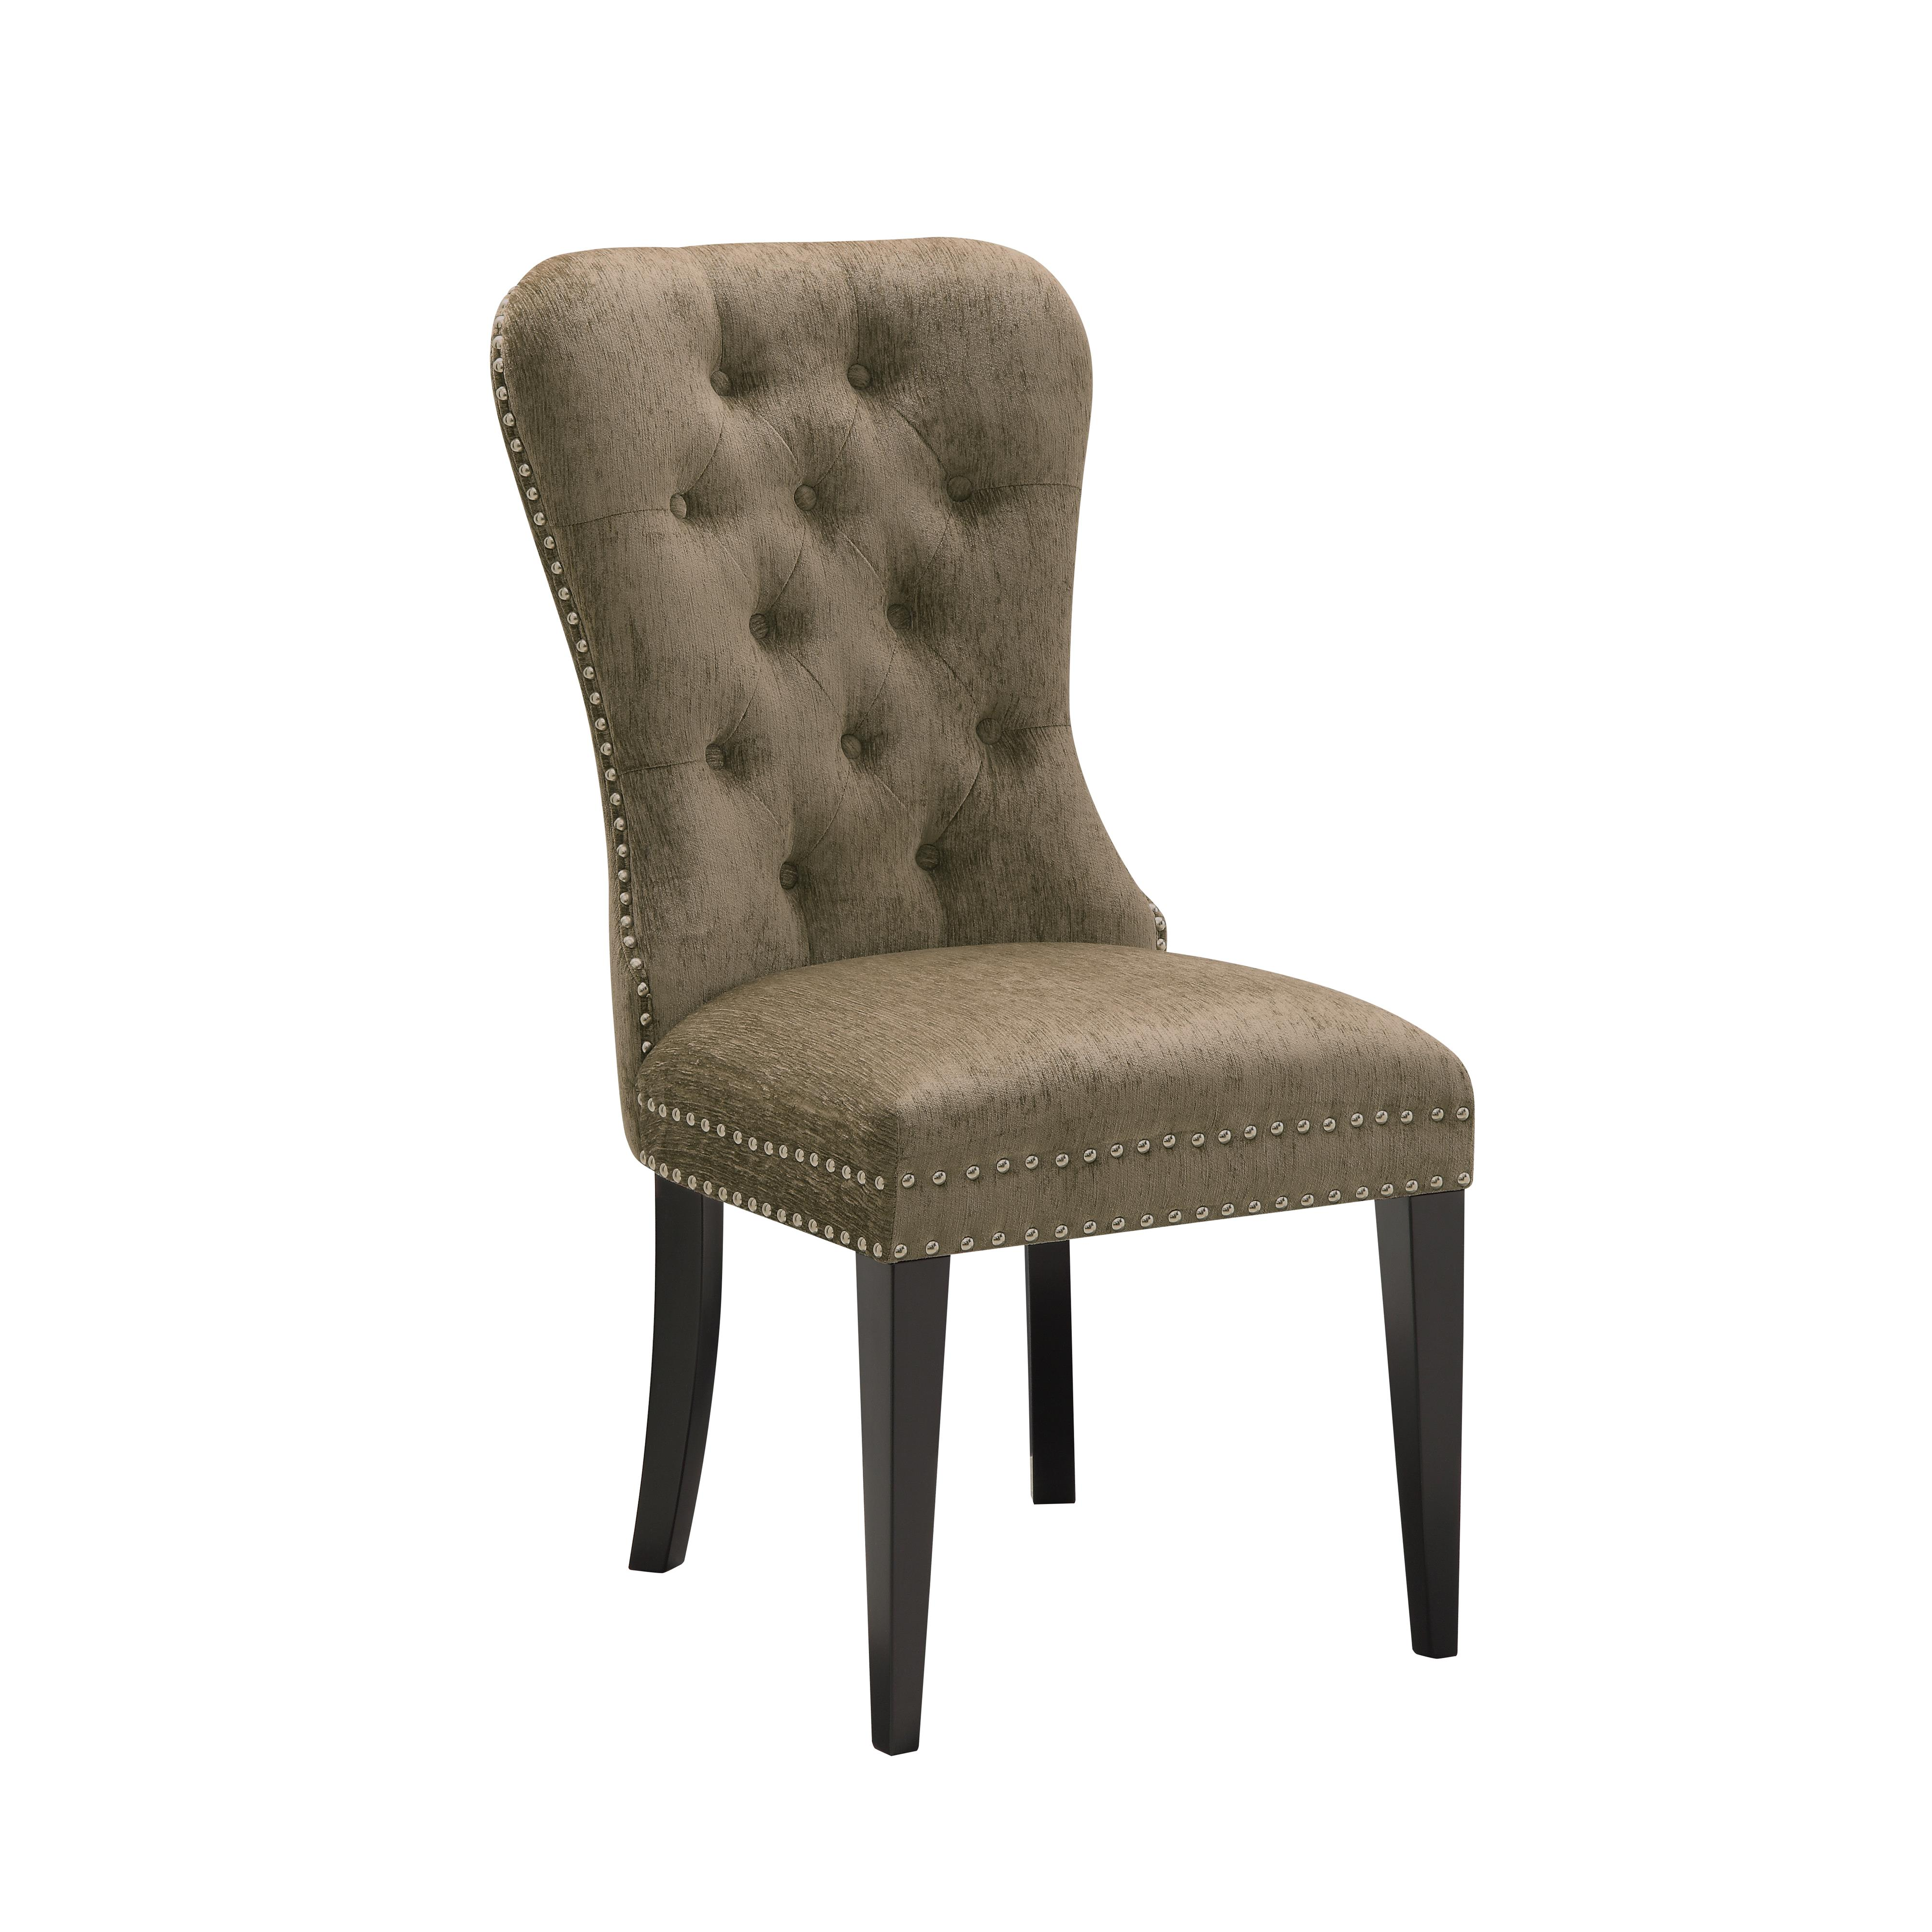 Coast to Coast Imports Coast to Coast Accents Accent Chair  - Item Number: 70721